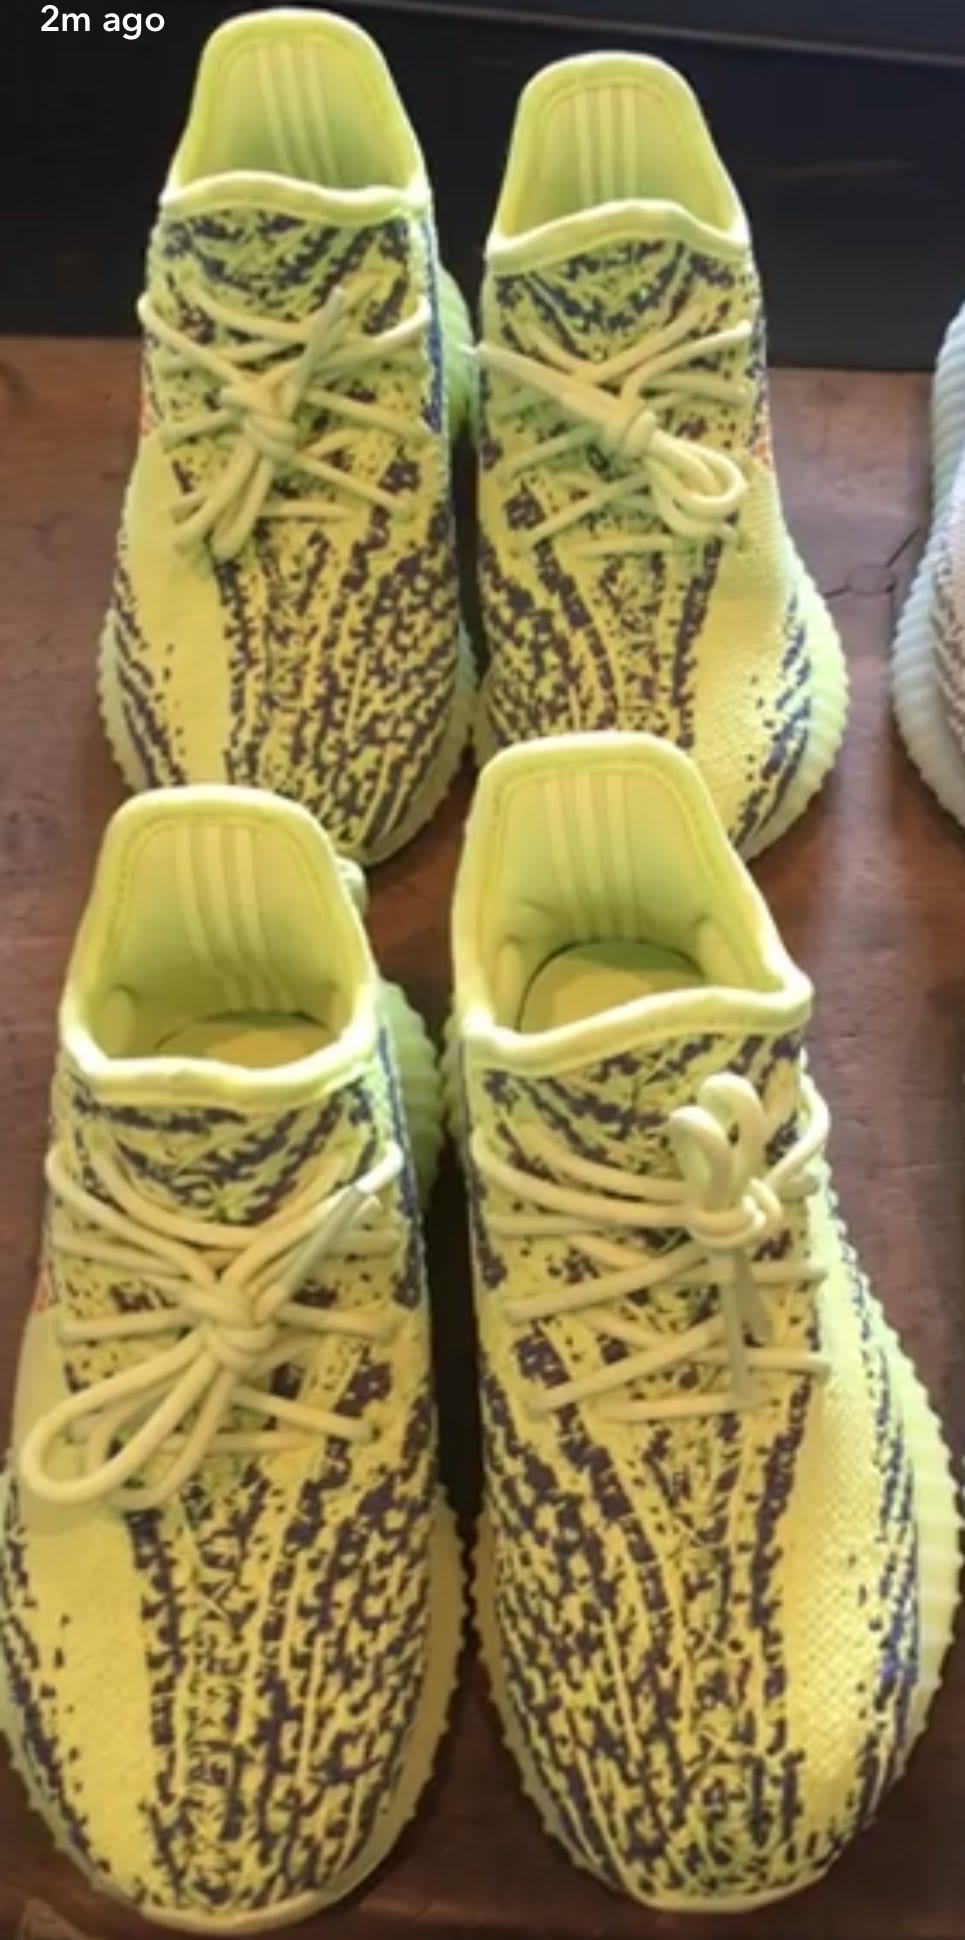 North & Saint West Adidas Yeezy Boost 350 V2 Semi Frozen Yellow